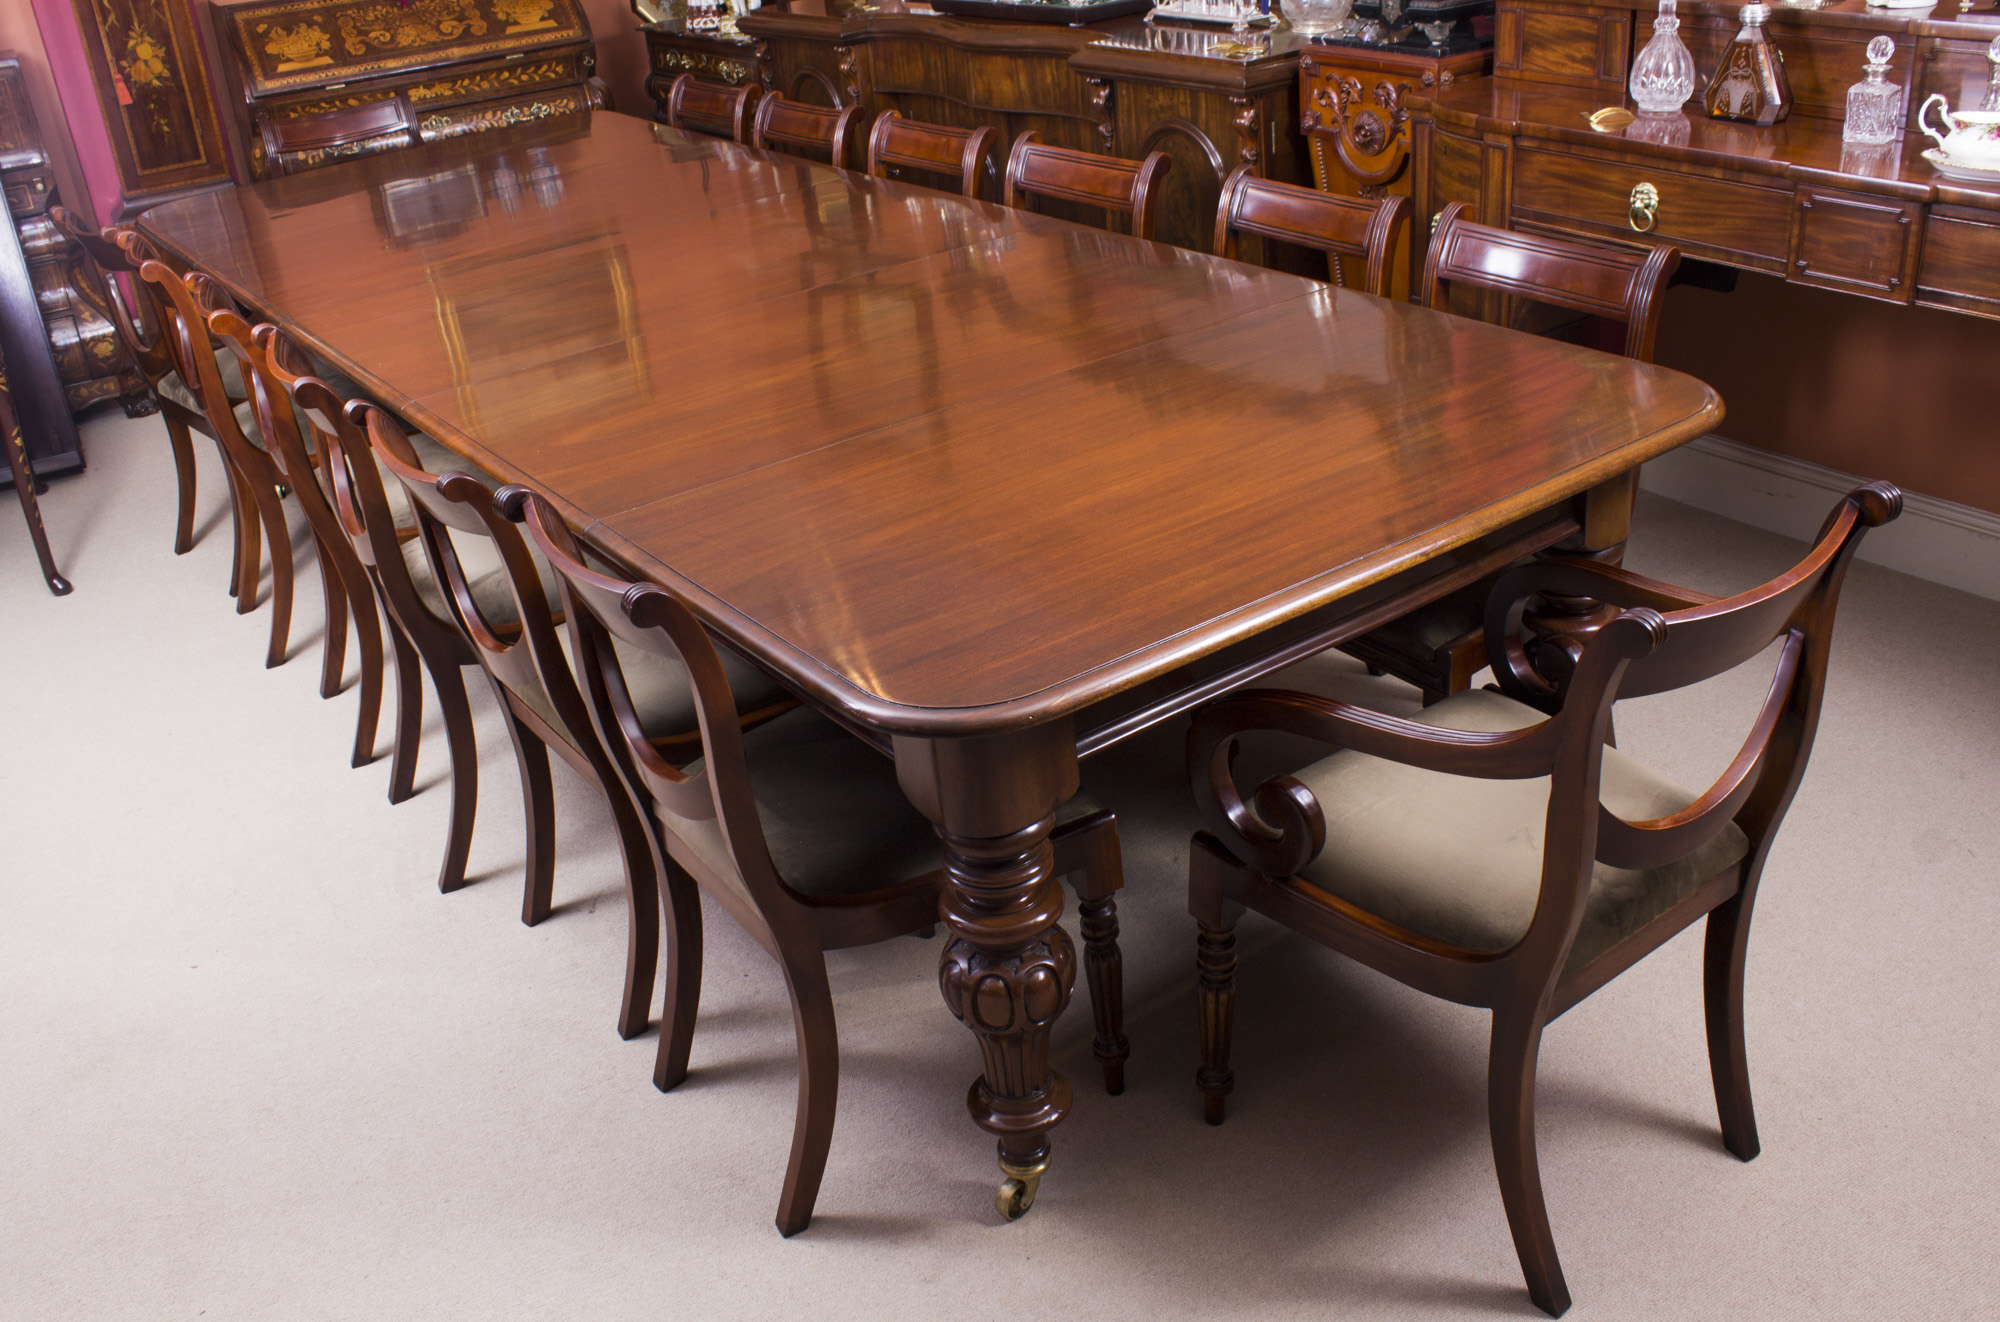 Antique Dining Table Amp Chairs Set Victorian